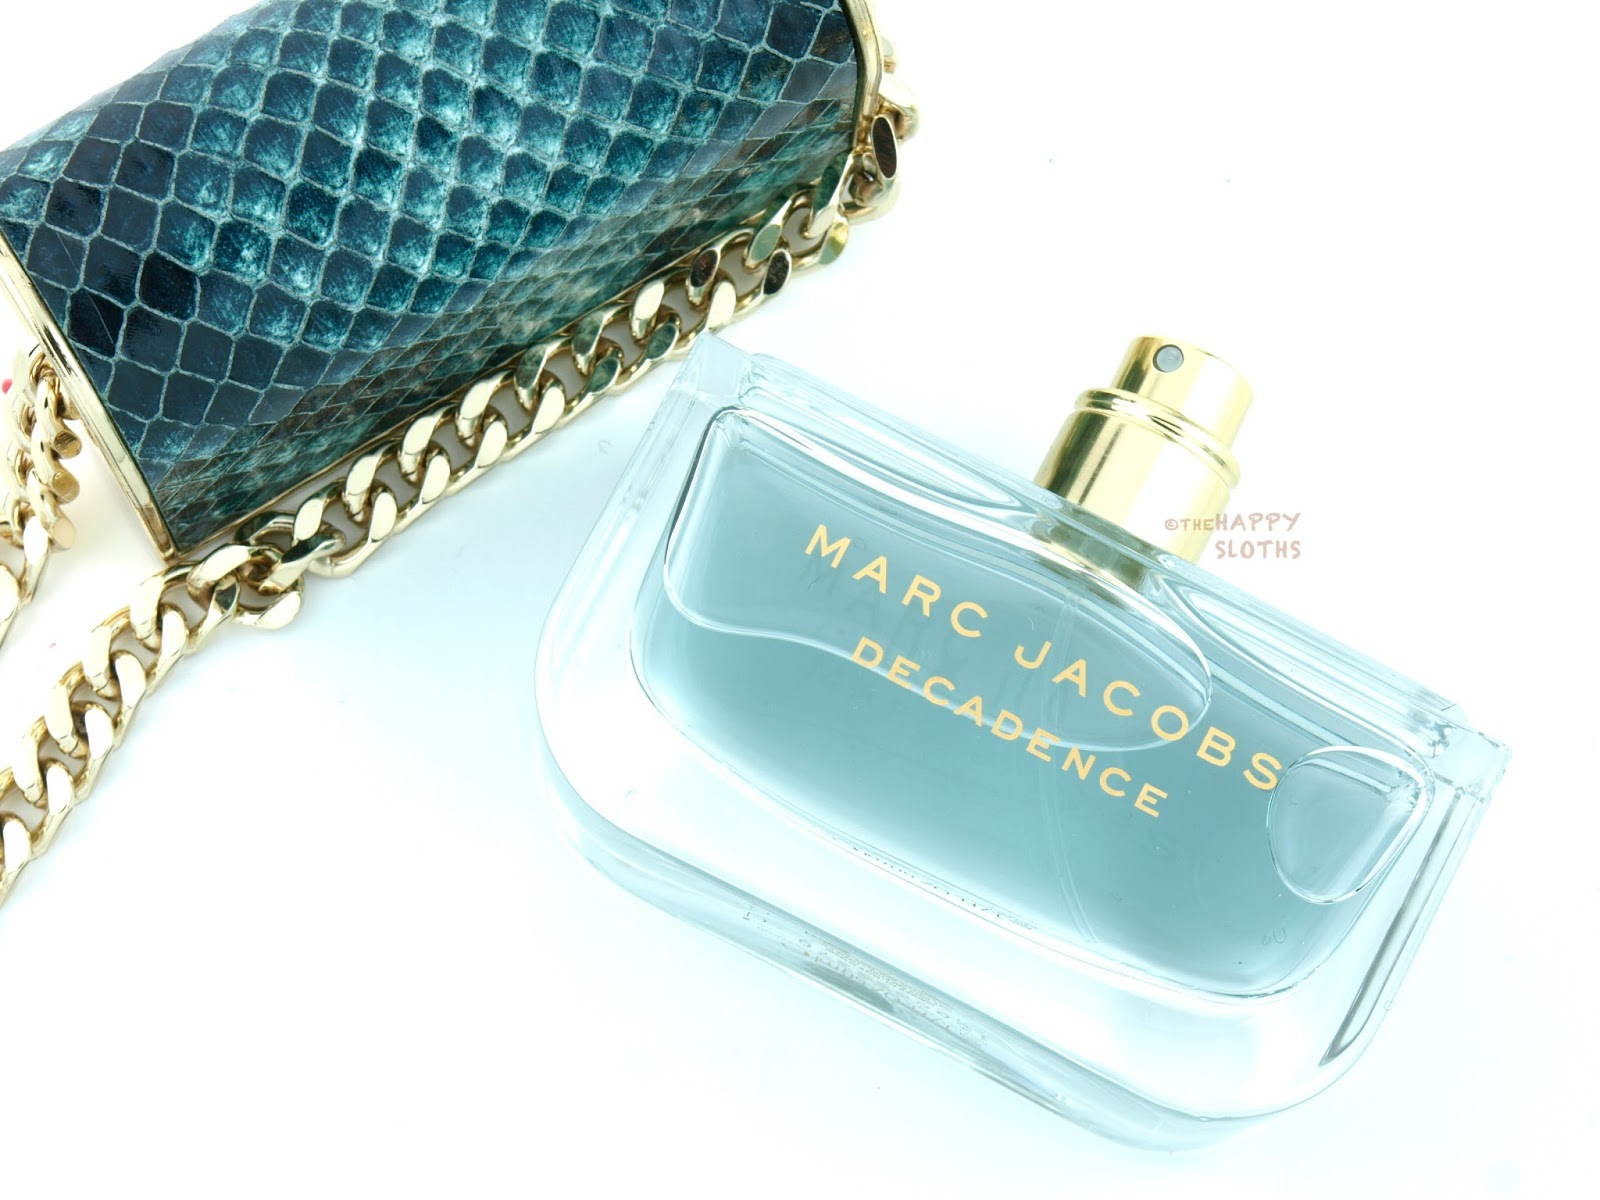 Marc Jacobs Divine Decadence Eau de Parfum: Review